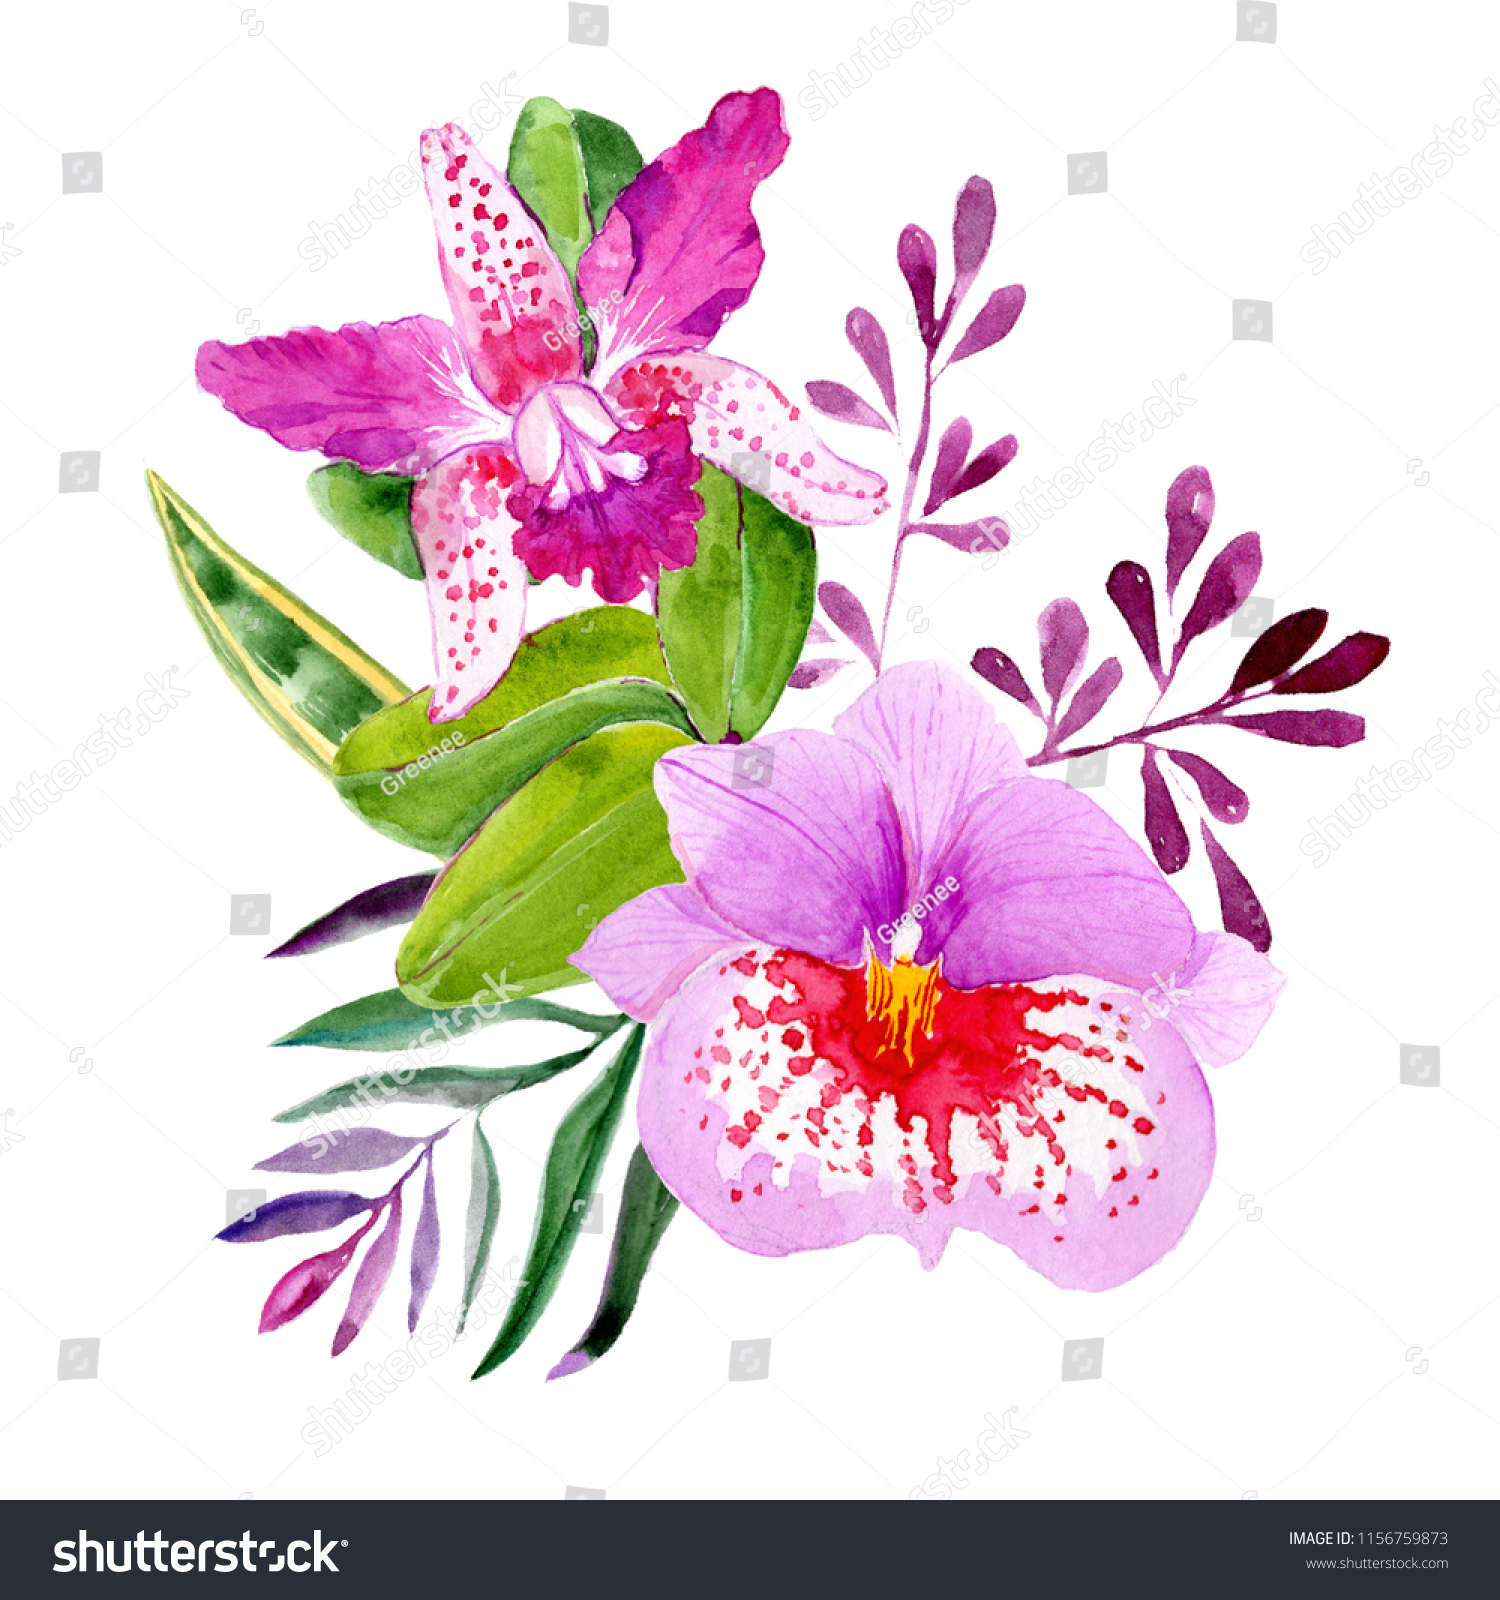 Bouquets leaves flowers watercolor style isolated stock illustration bouquets of leaves and flowers in watercolor style isolated on white background can be used izmirmasajfo